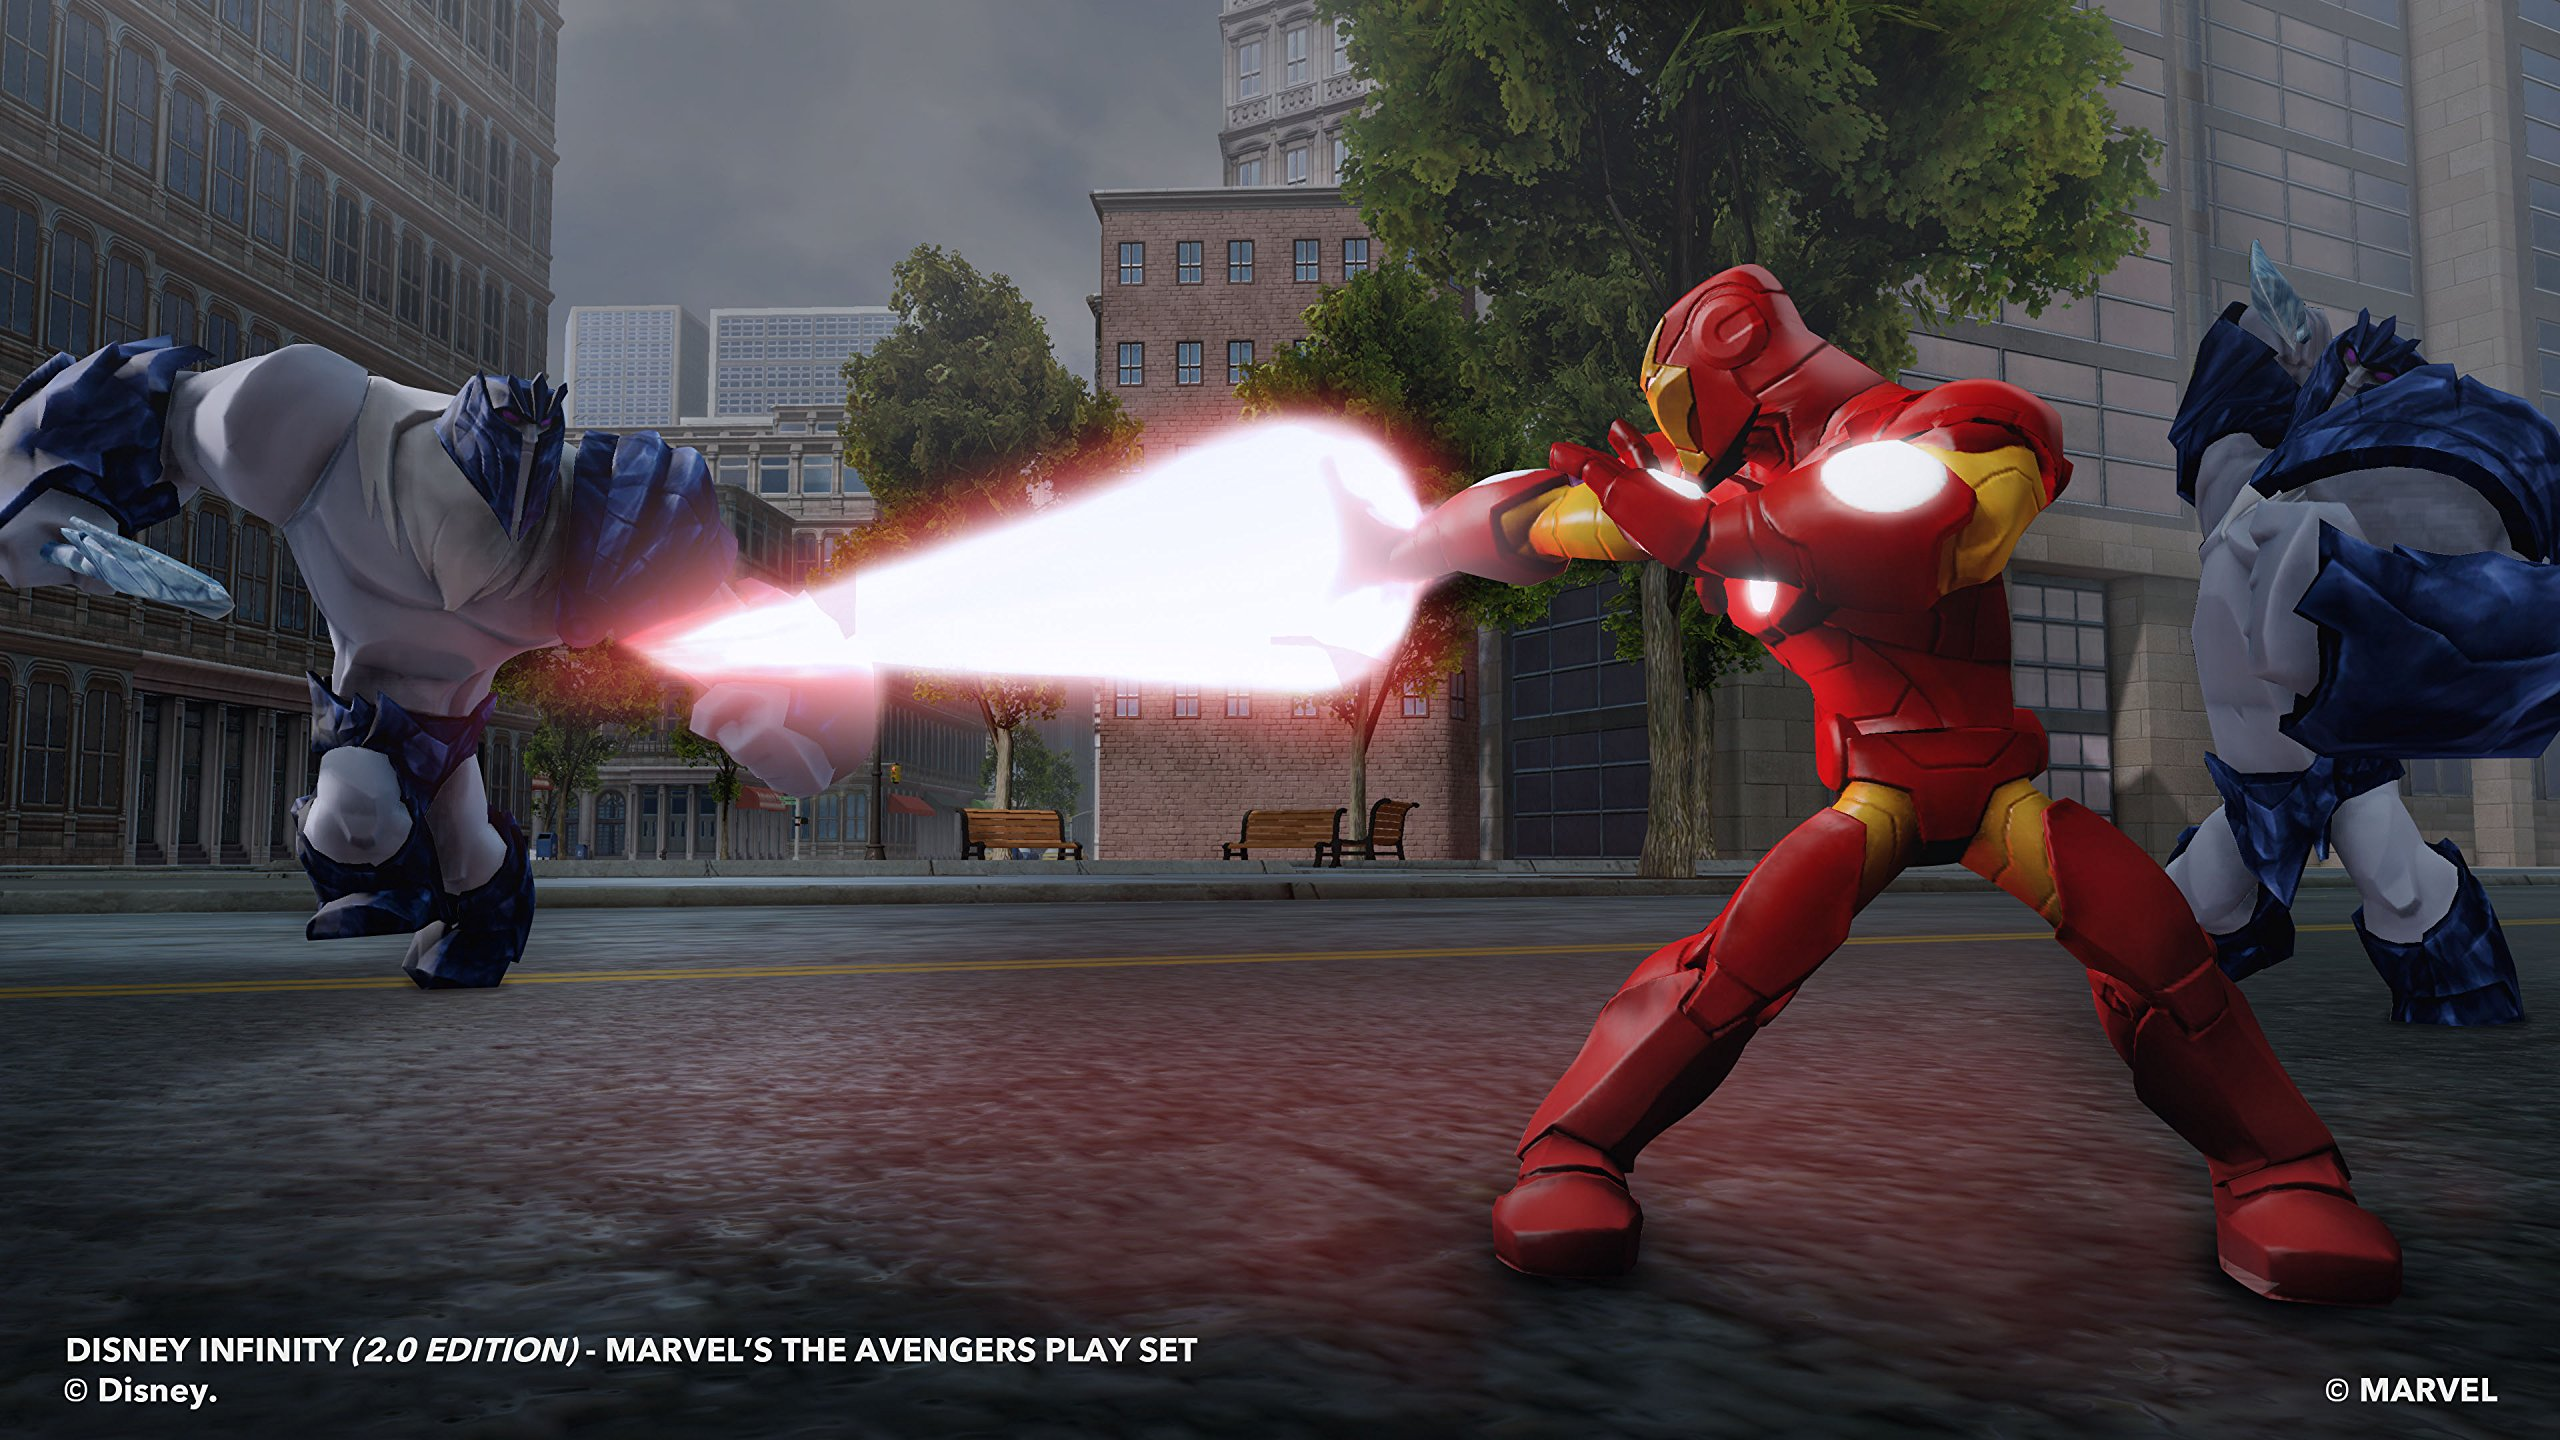 Disney Infinity: Marvel Super Heroes (2.0 Edition) PlayStation 3 12GB Bundle by Sony (Image #3)